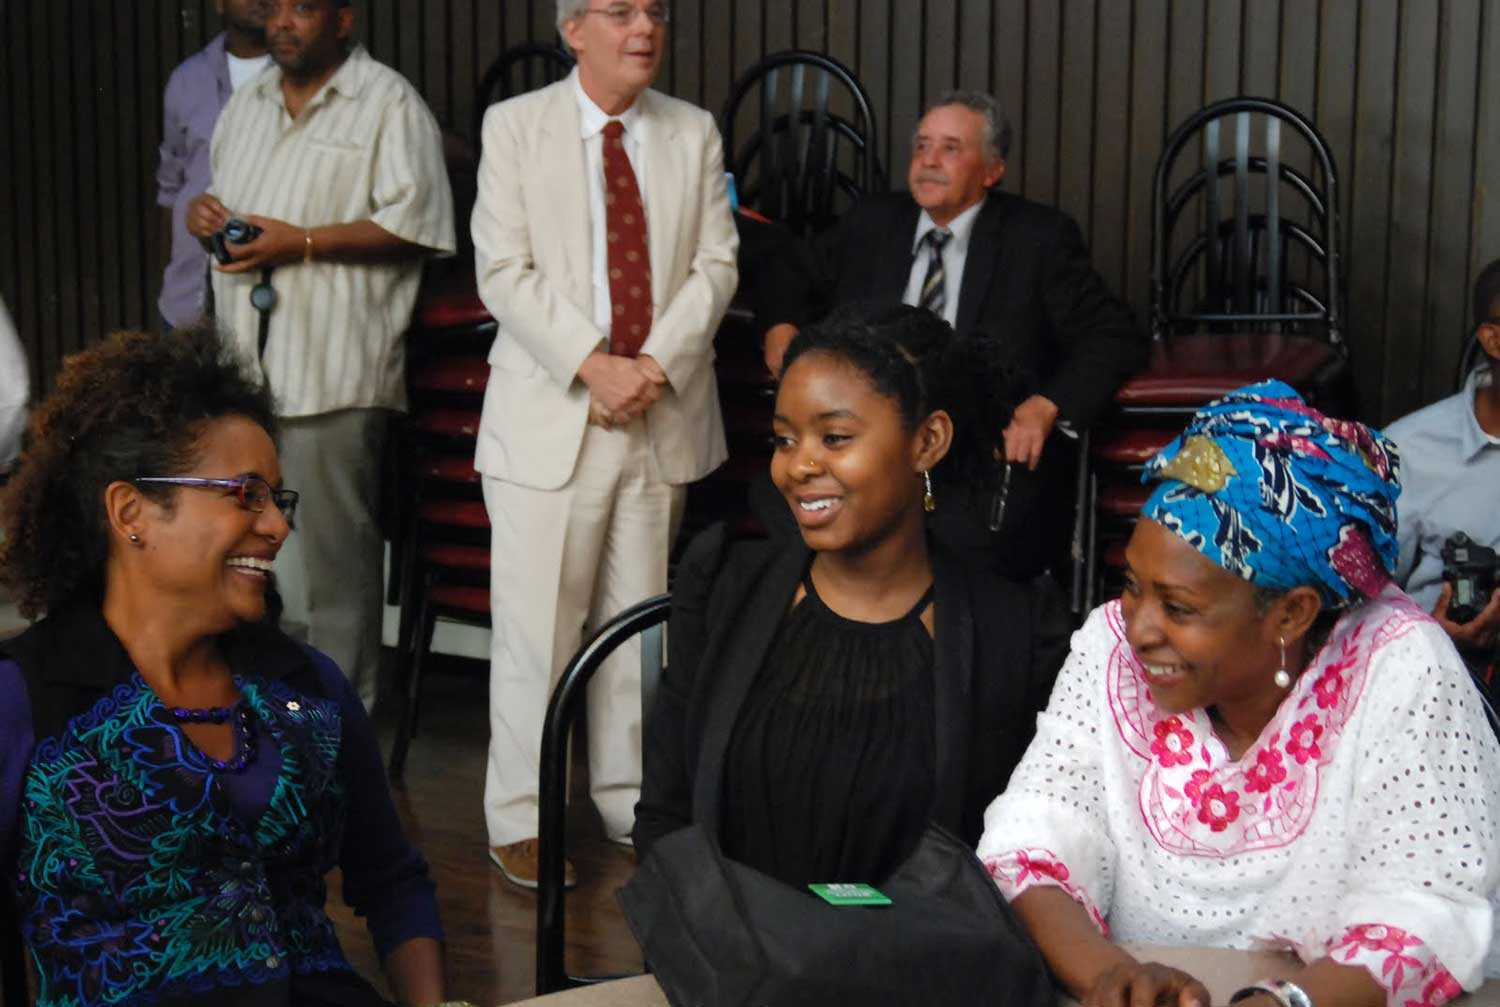 Former Governor General Michaëlle Jean shares a moment with Dr. Afua Cooper (right) and her daughter Habiba Diallo (centre) at the Harriet Tubman Institute event on August 27, 2011.